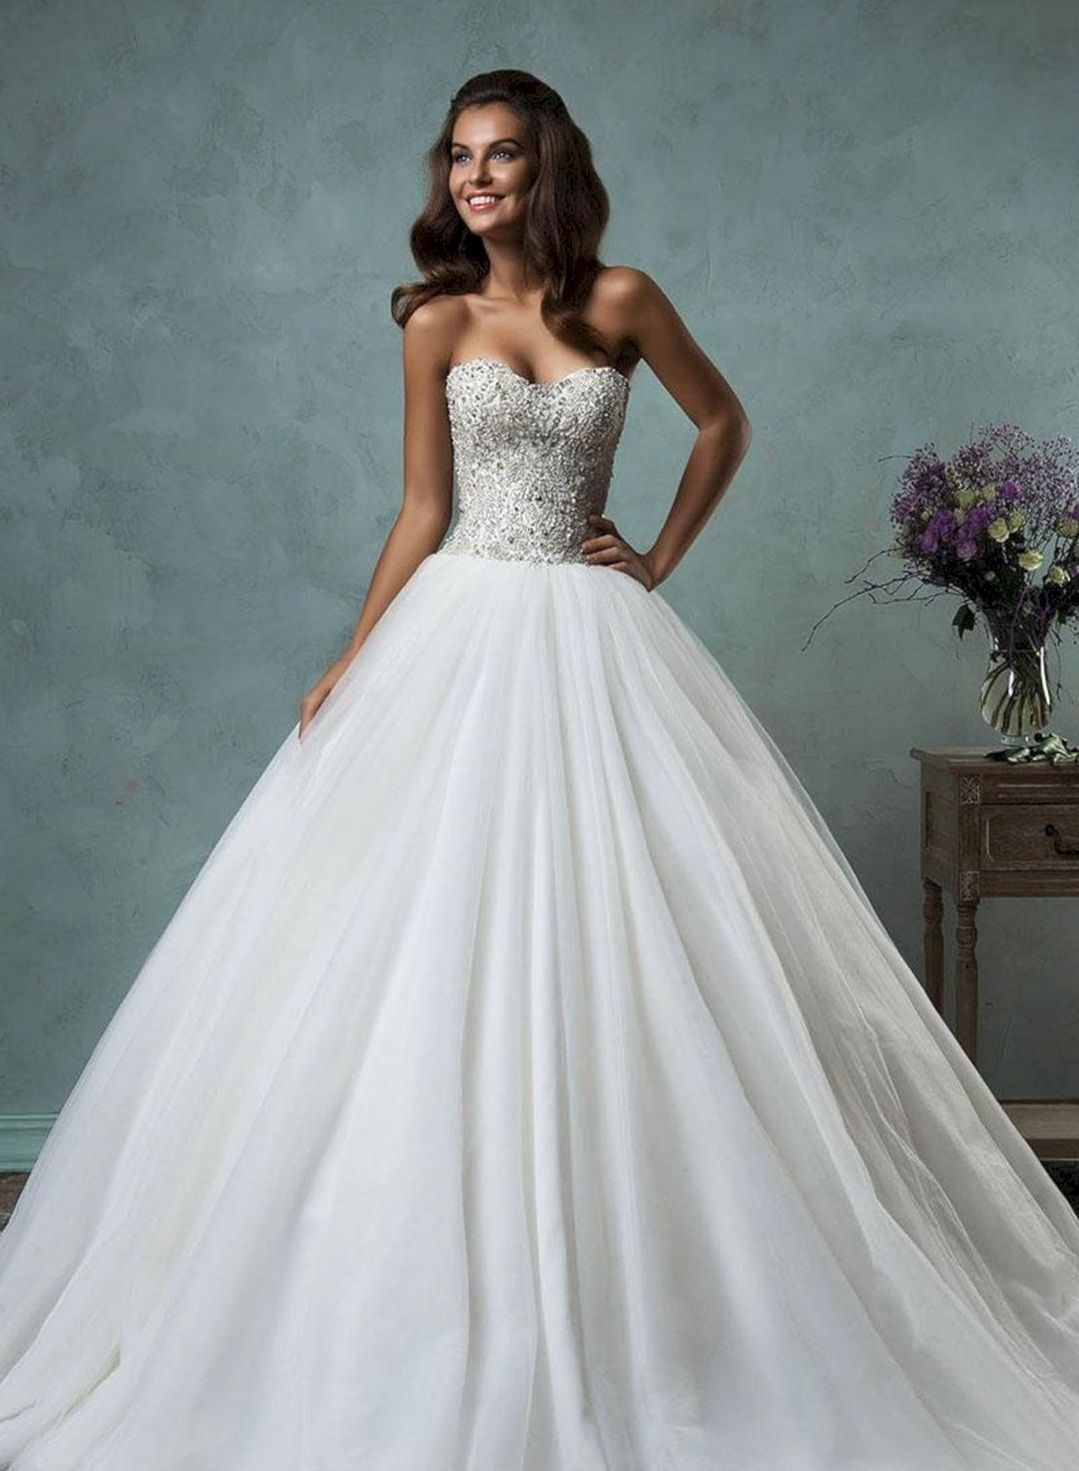 25+ Beautiful Glitter Ballroom Wedding Gowns For Your Amazing ...